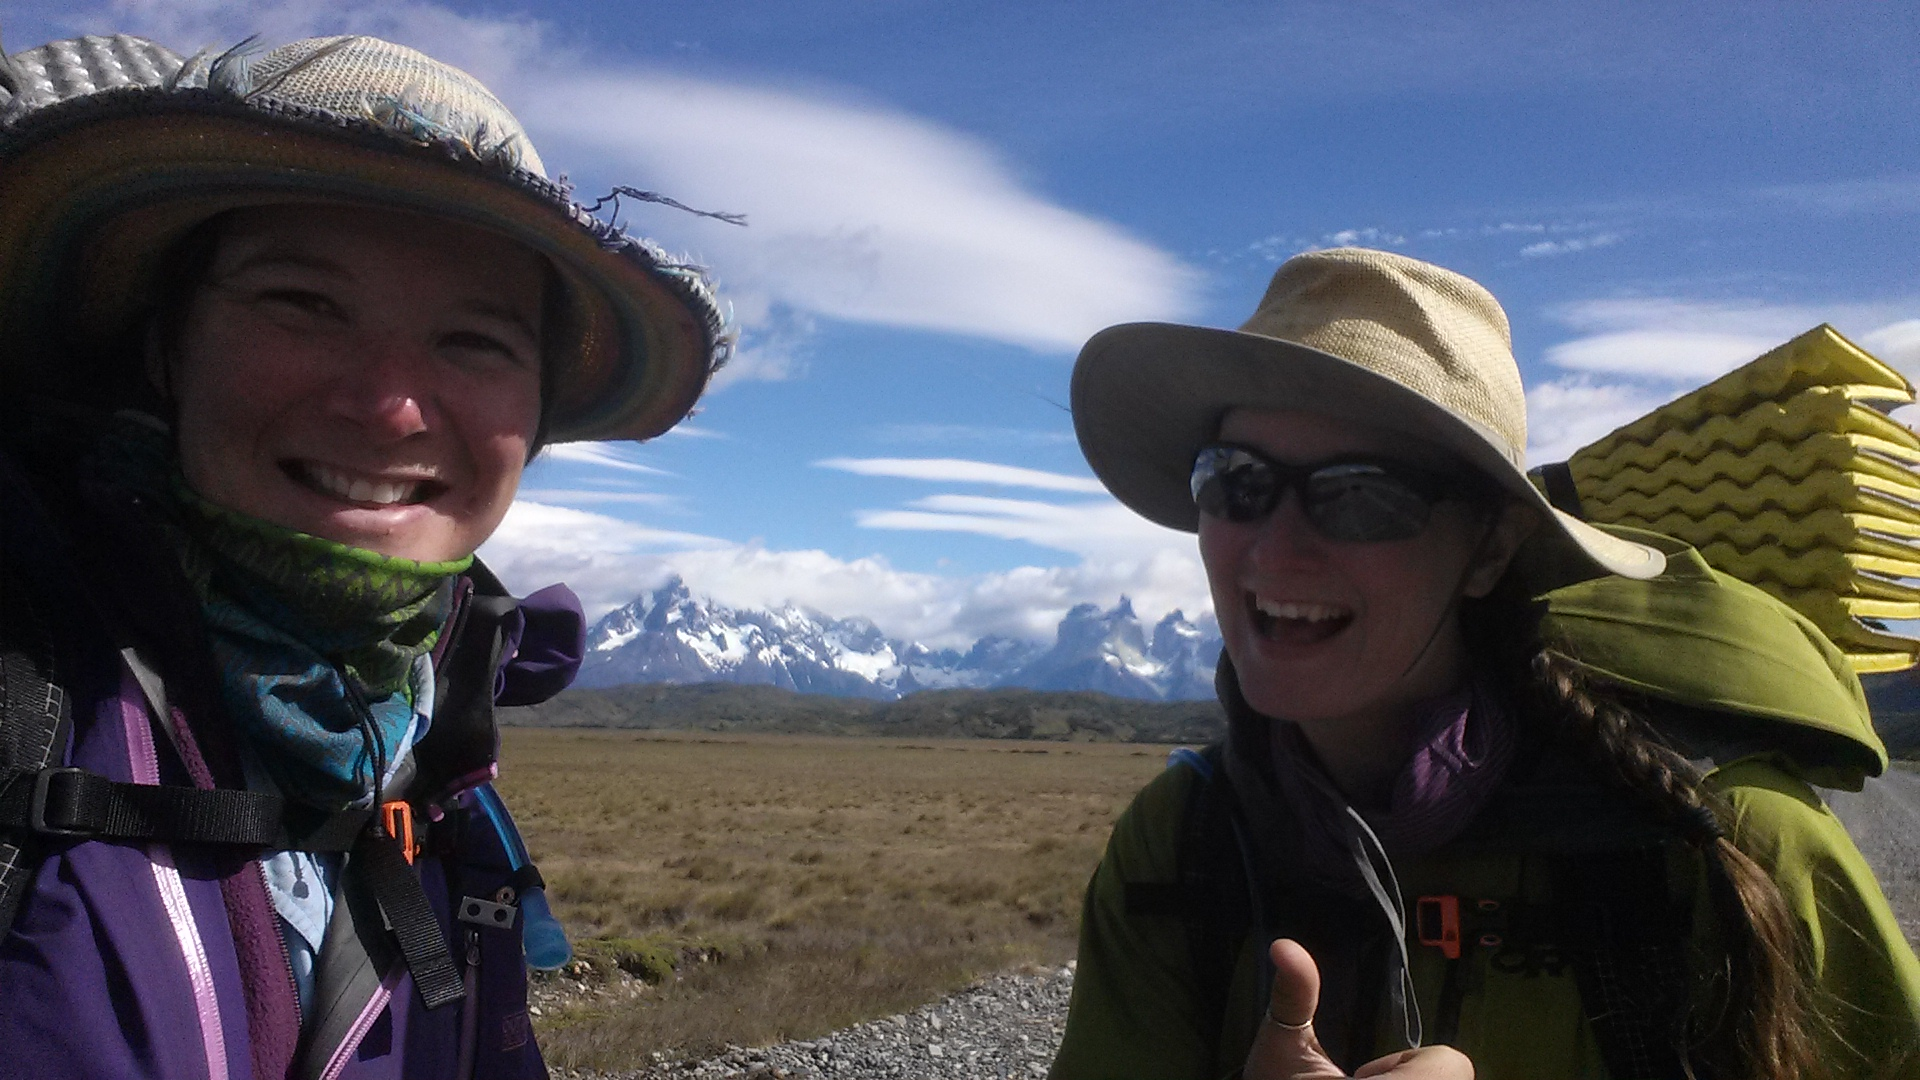 Us and Torres del Paine